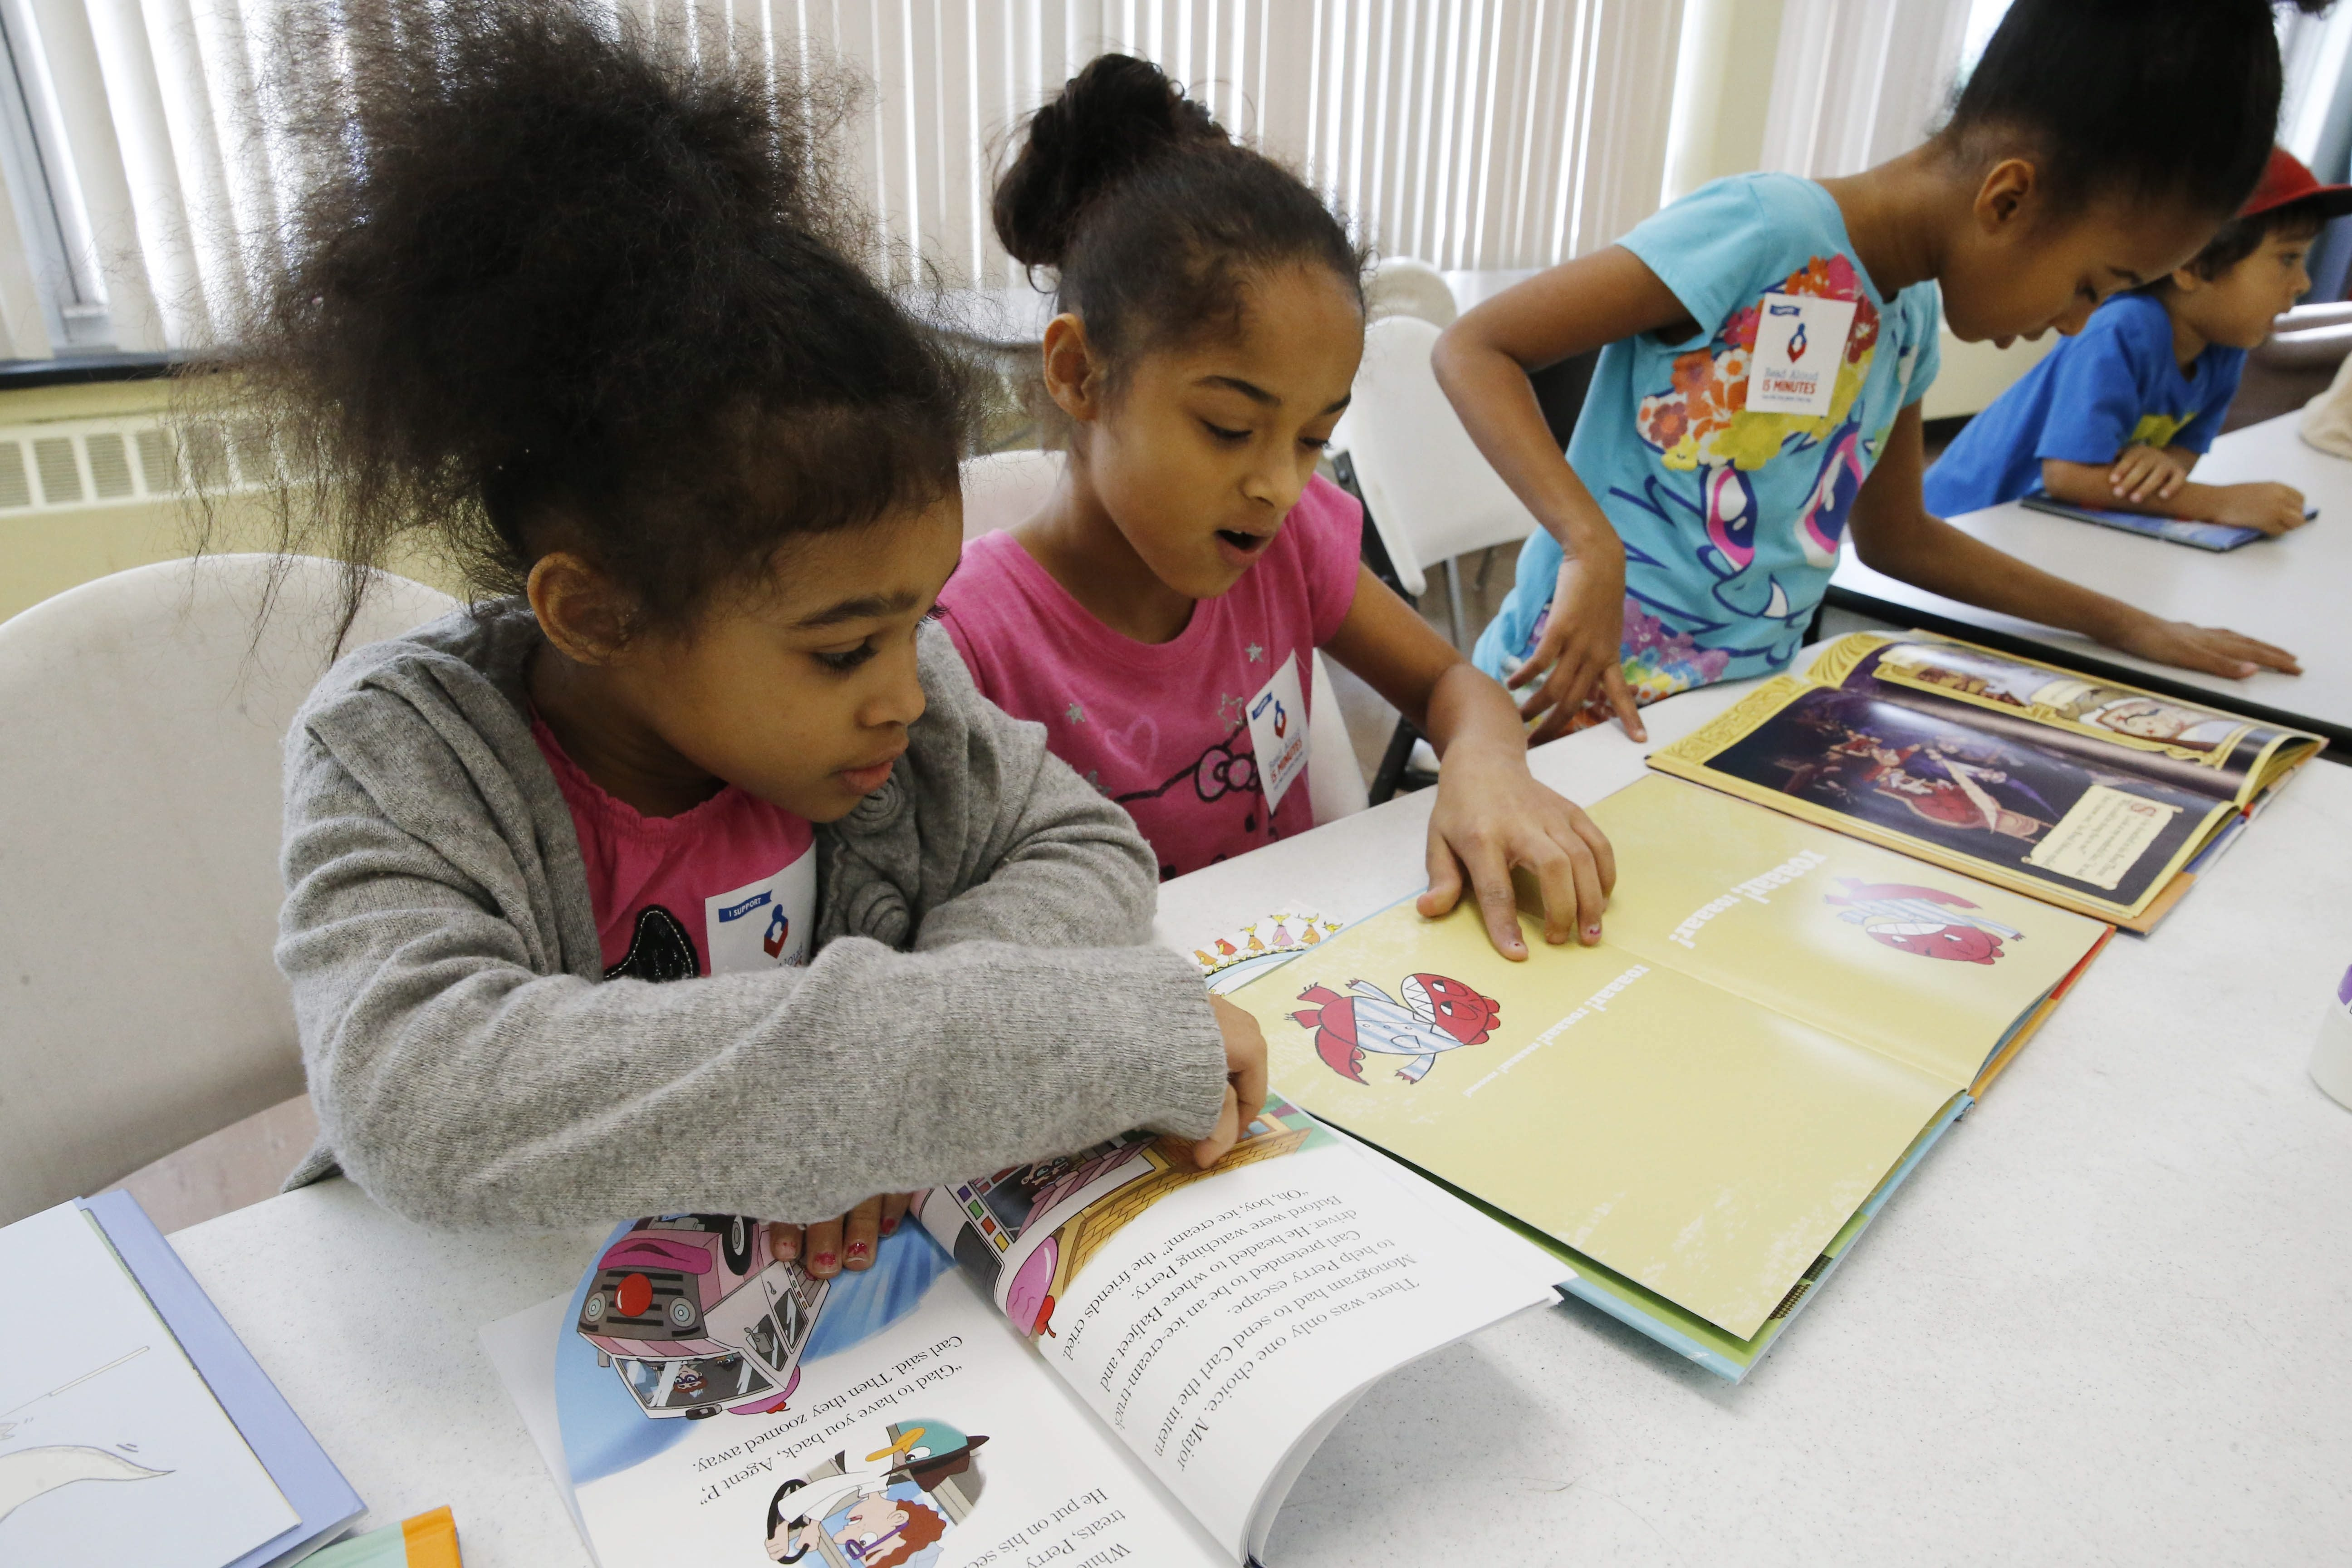 Salvation Army Kids Club members, from left, Courtlynn Paris, 6, Suzie Williams, 10, and Courtney Paris, 7, read together during Friday's launch of the Books for Kids campaign.